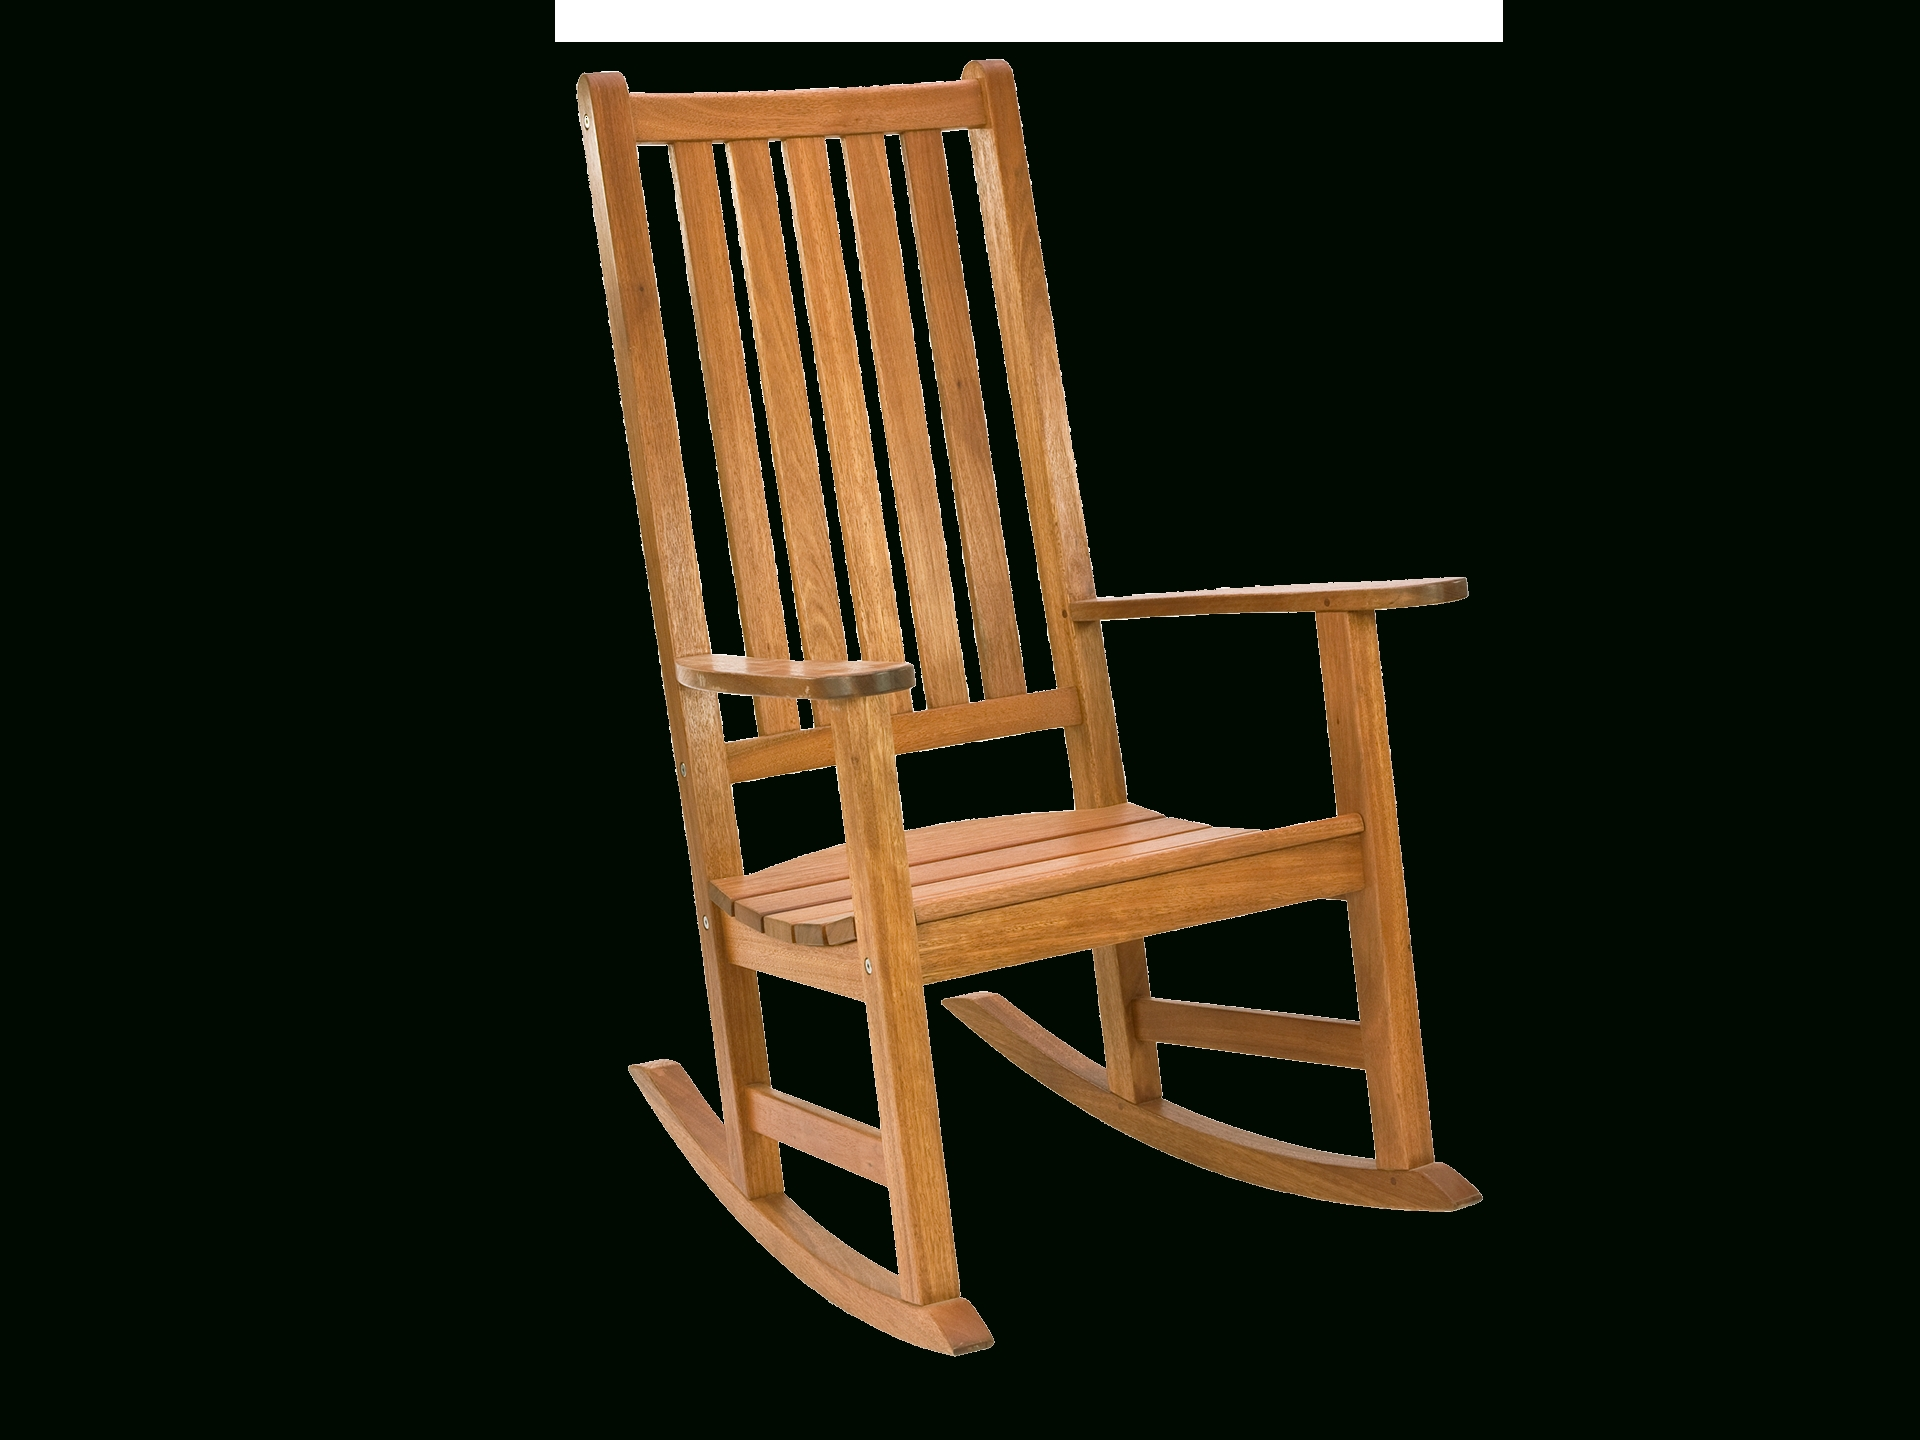 2017 Stunning Rocking Chair Rose Images – Joshkrajcik – Joshkrajcik Intended For Rocking Chairs At Roses (View 2 of 15)